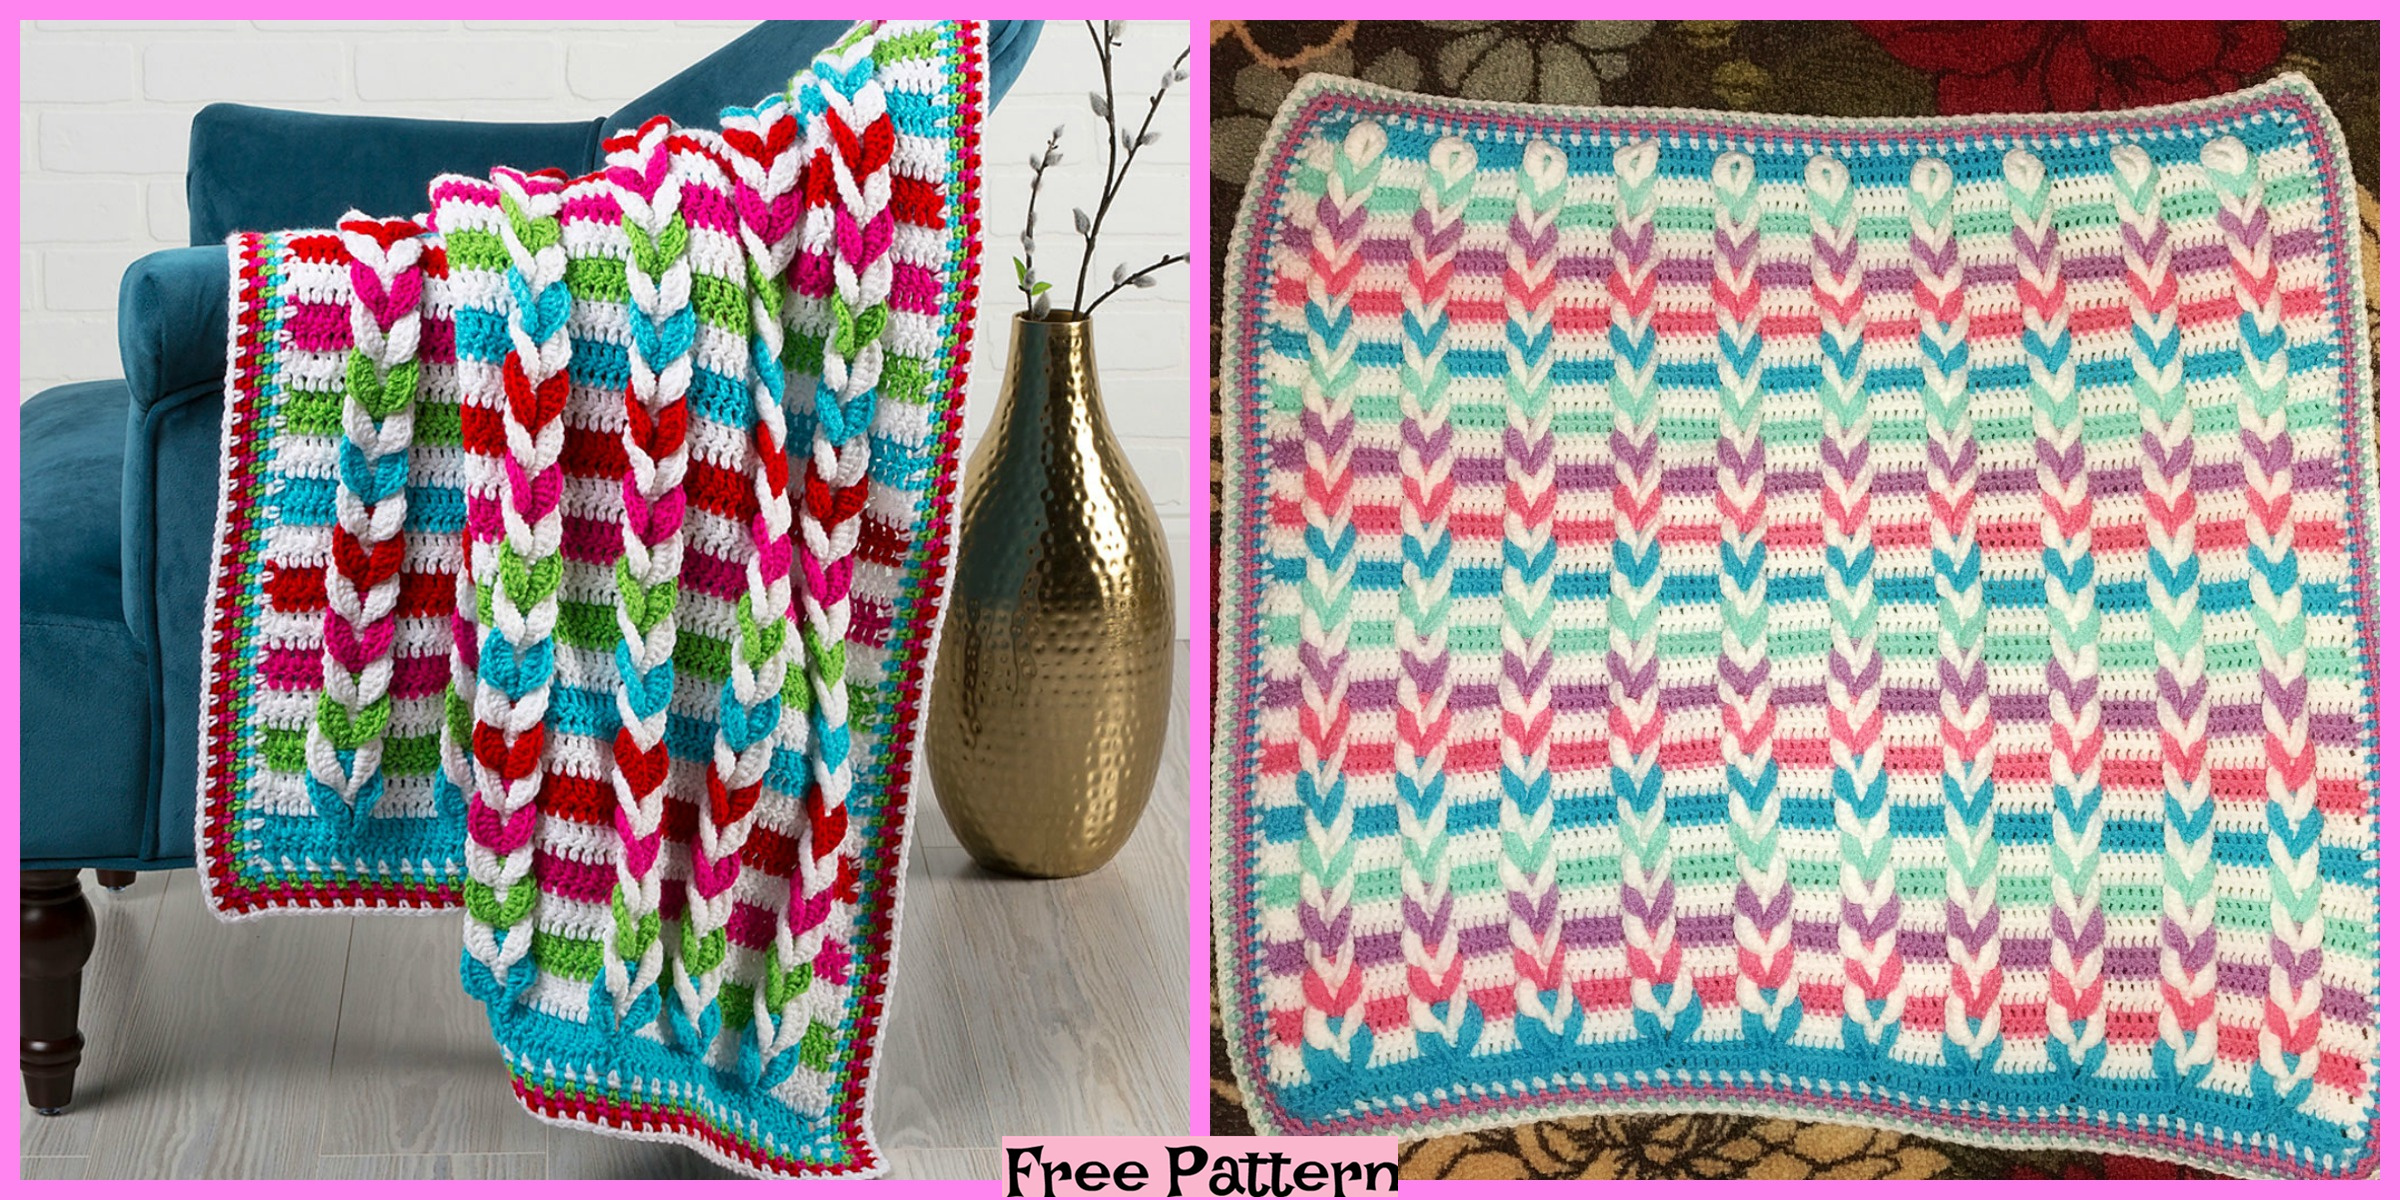 Pulled Crochet Taffy  Blanket – Free Pattern